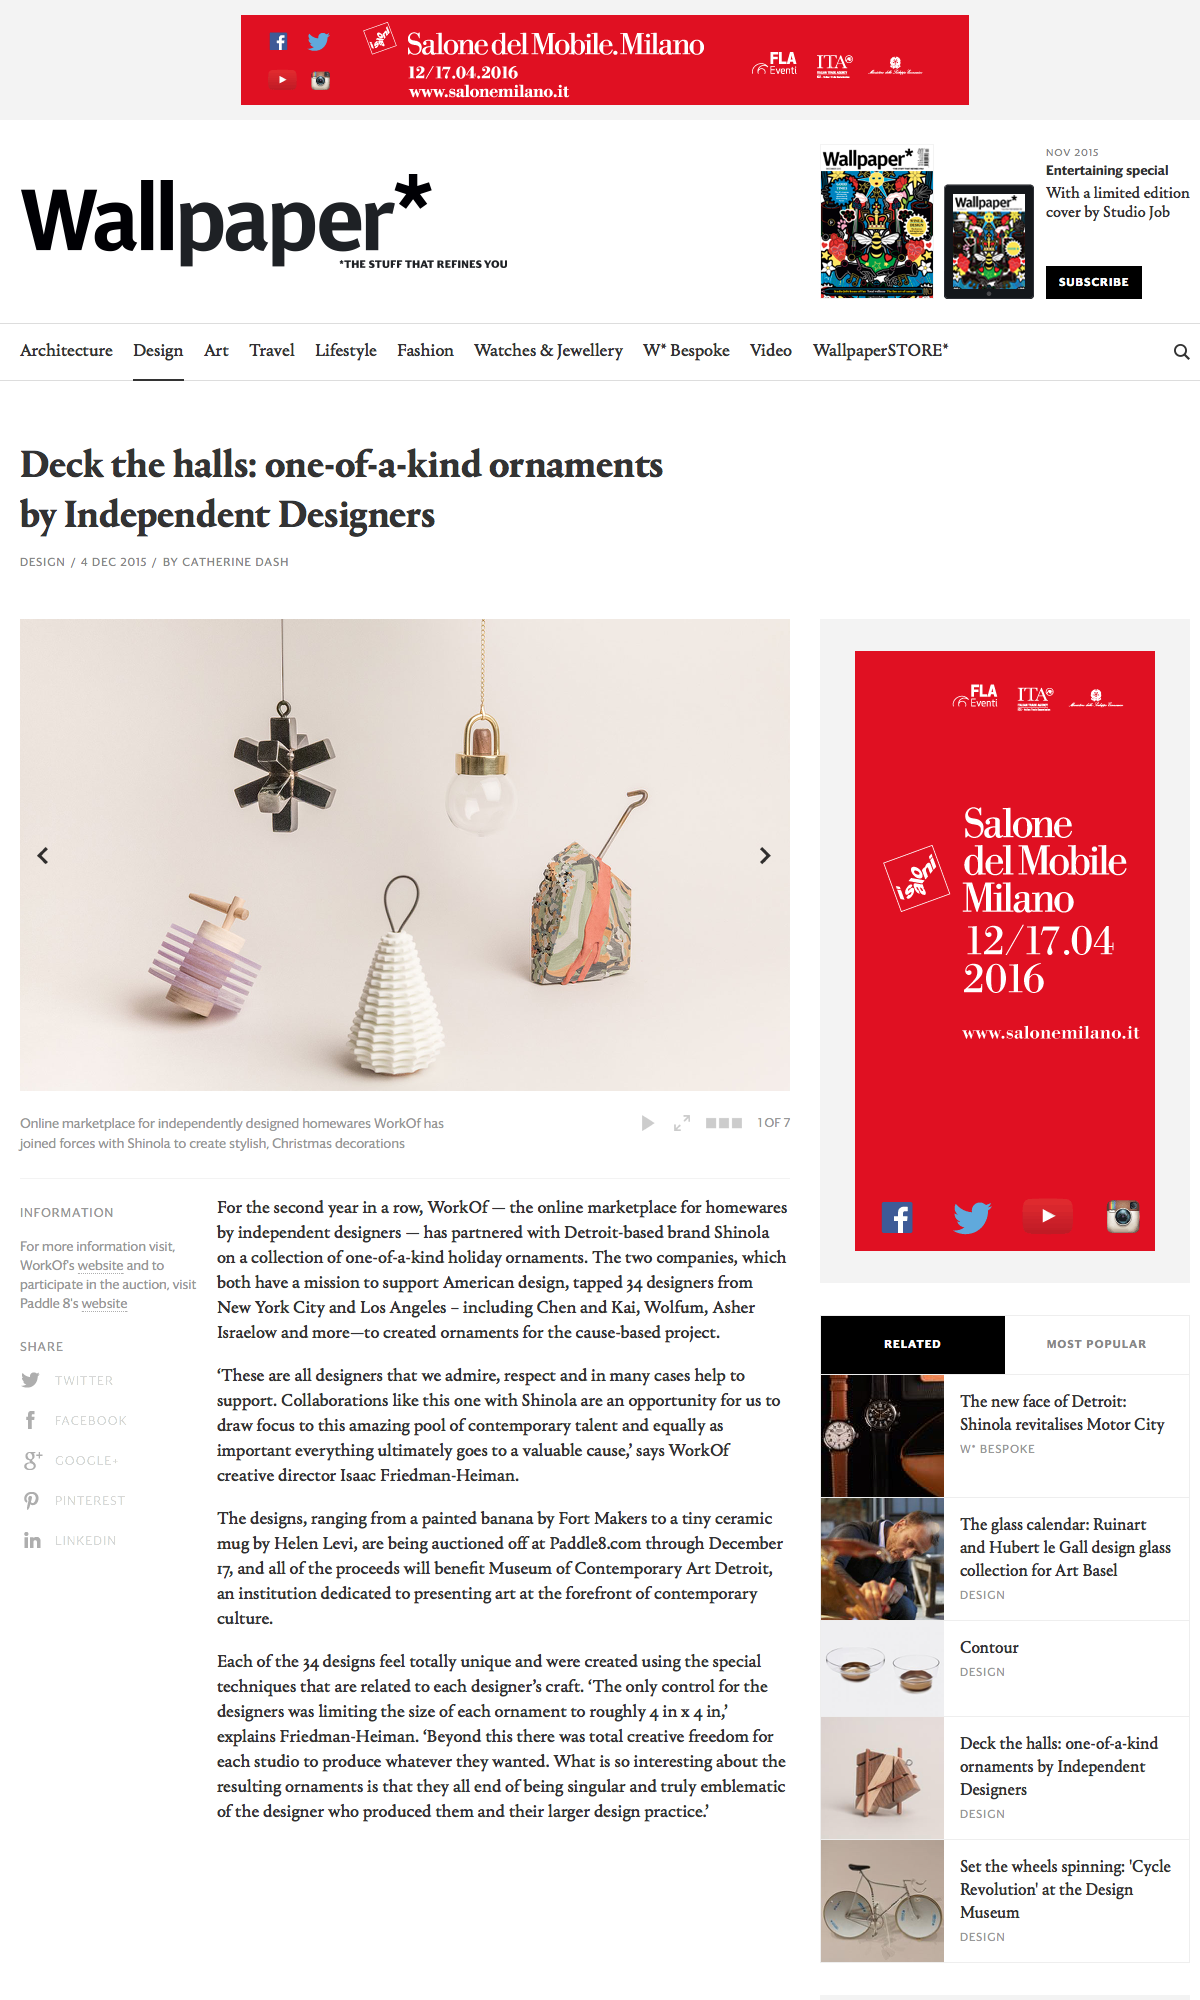 wallpaper-design-deck-the-halls-one-of-a-kind-ornaments-by-independent-designers (20151205).png